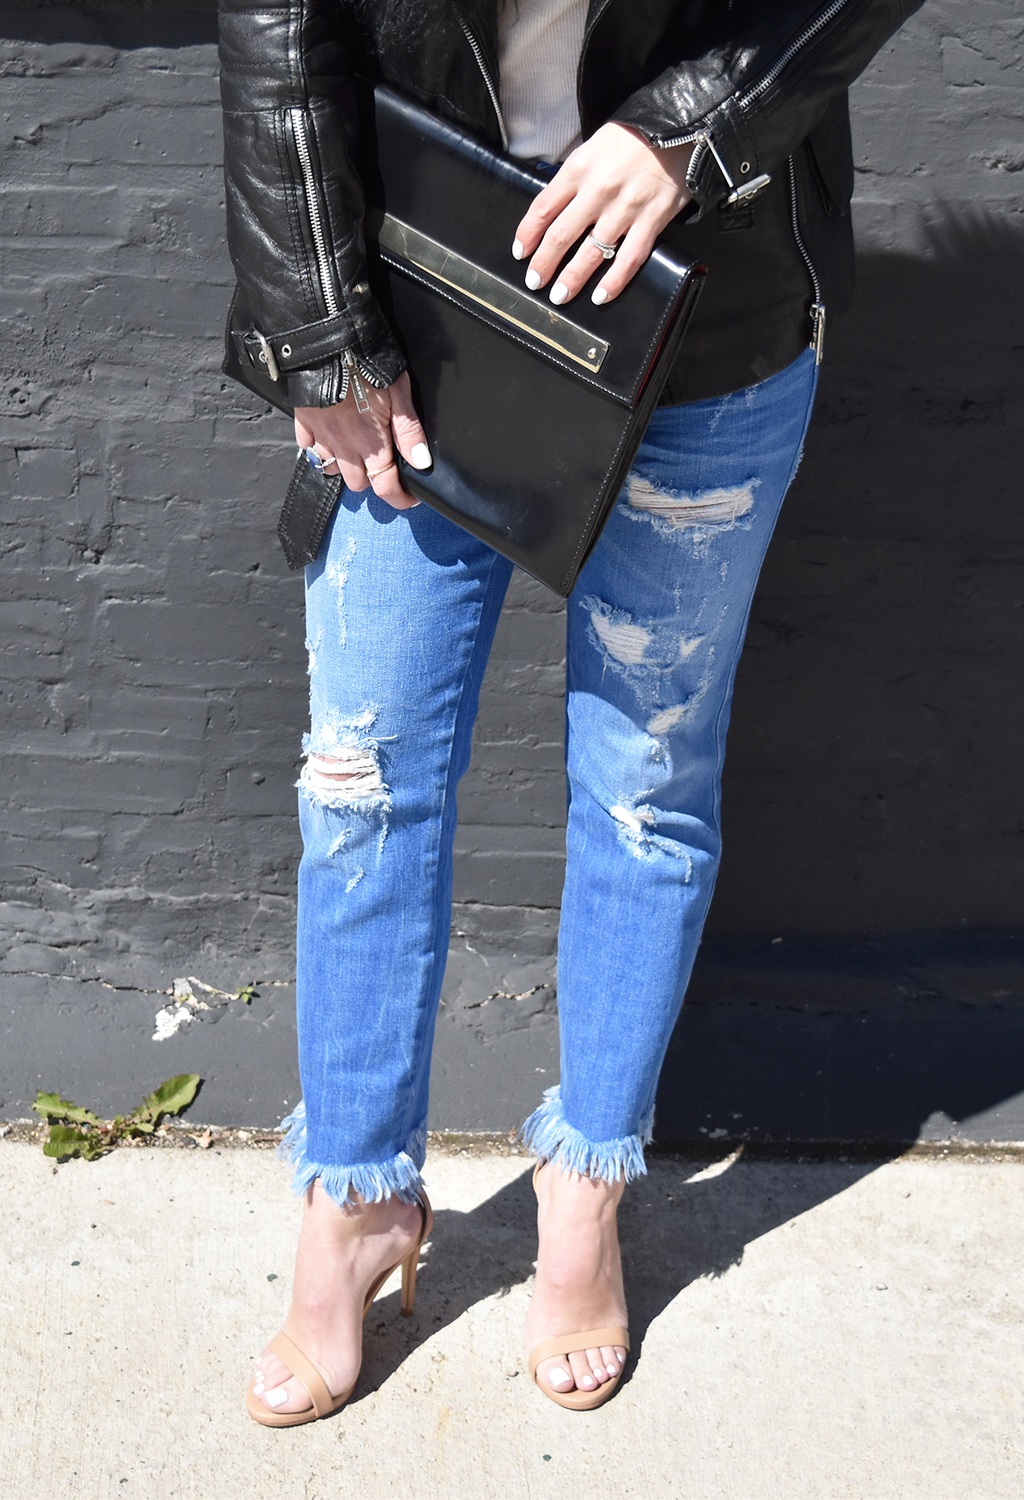 Amp Up Your Casual Look | H&M Sunglasses, River Island Black Leather Jacket with Faux Mongolian Fur, H&M White T-Shirt, Zara Ripped Jeans, Zara Clutch, Steve Madden 'Stecy' Sandal Heels